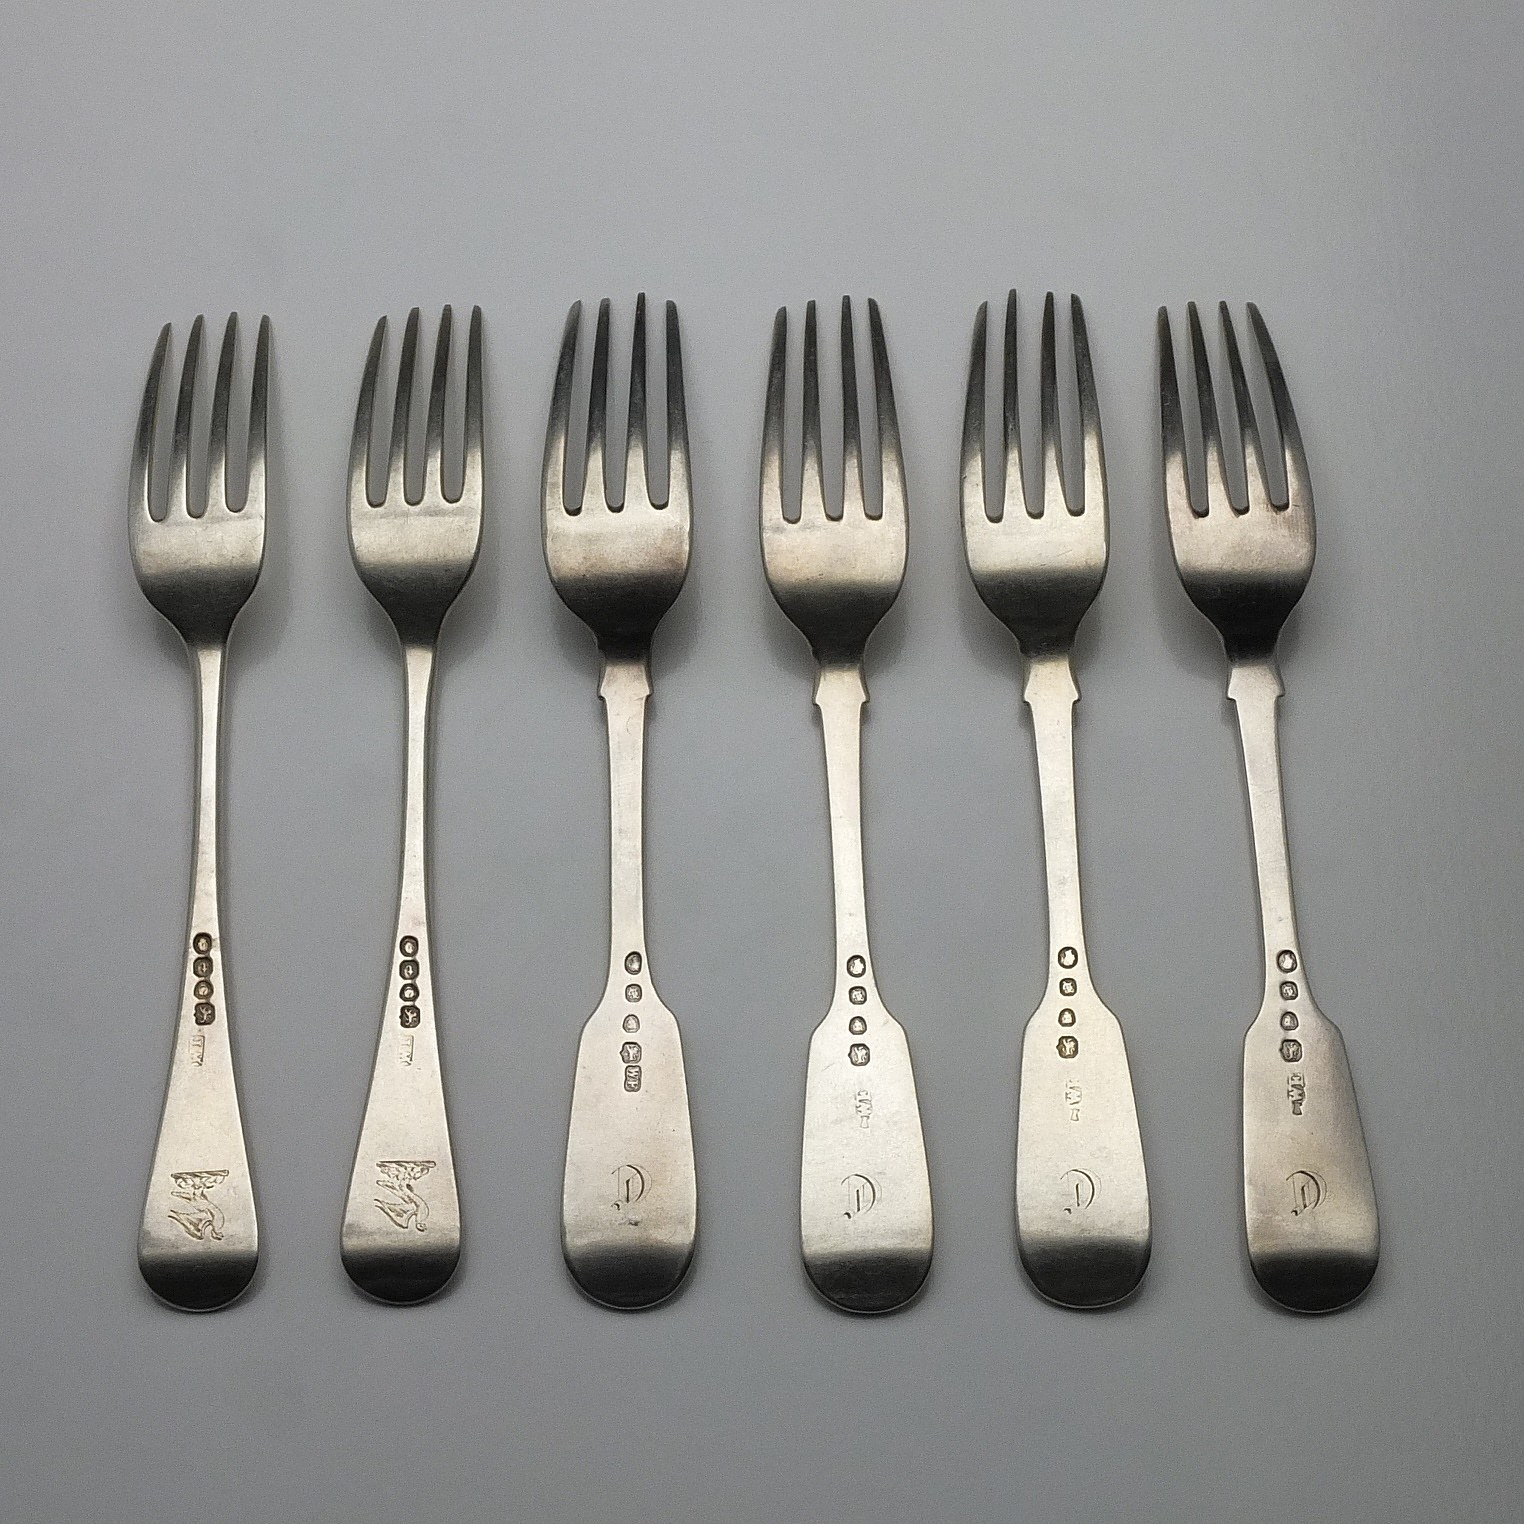 'Six Sterling Silver Entree Forks Sterling Silver William Eaton London 1843'